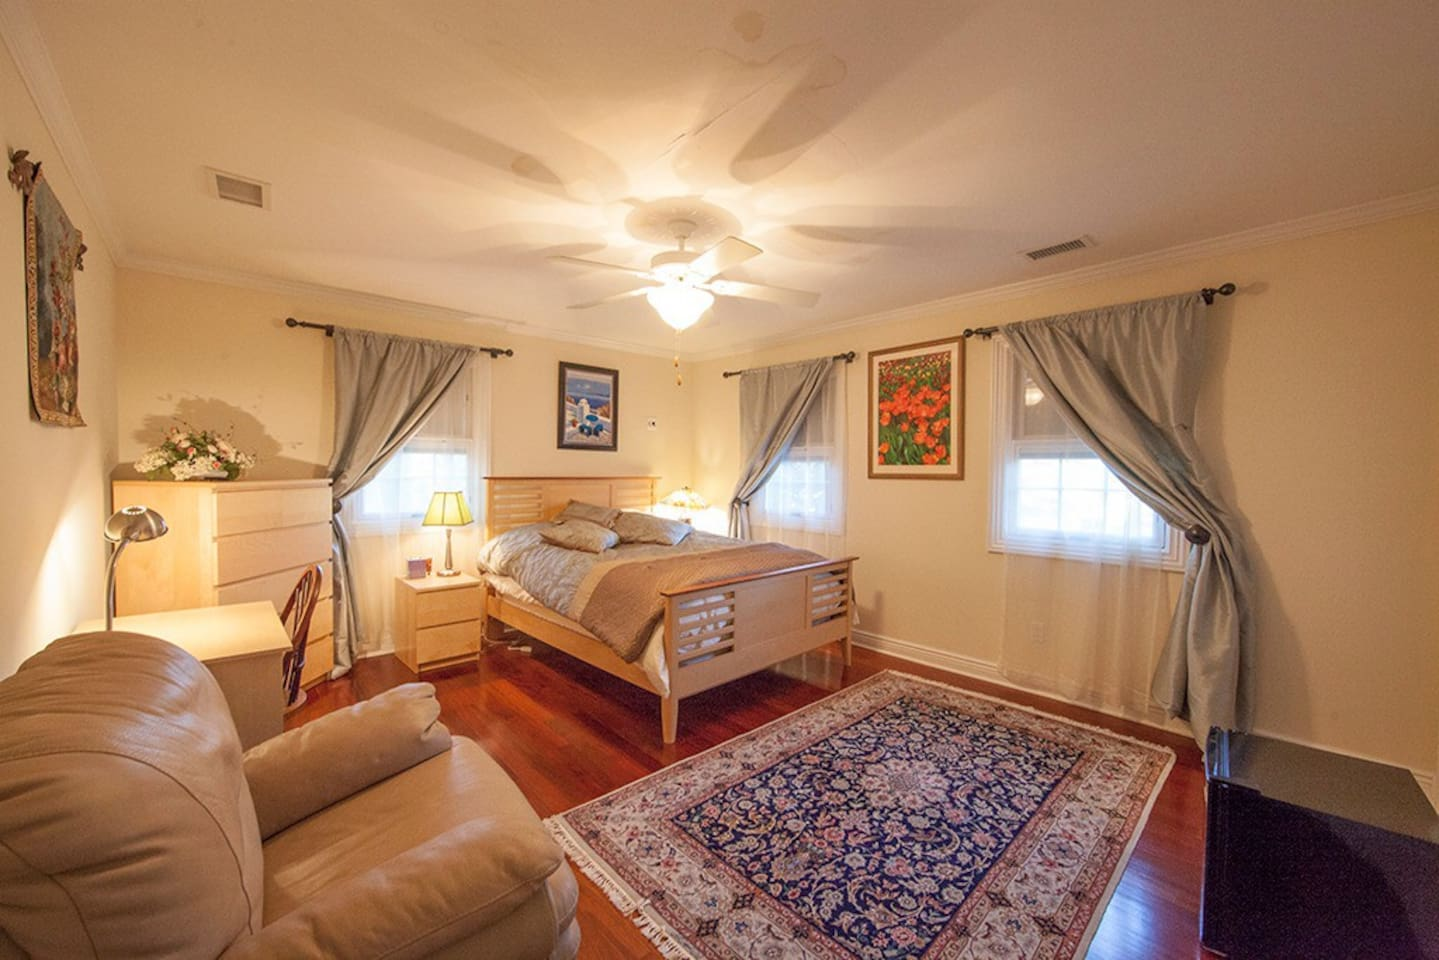 Sunny, spacious bedroom with a queen size bed, office area, walk in closet